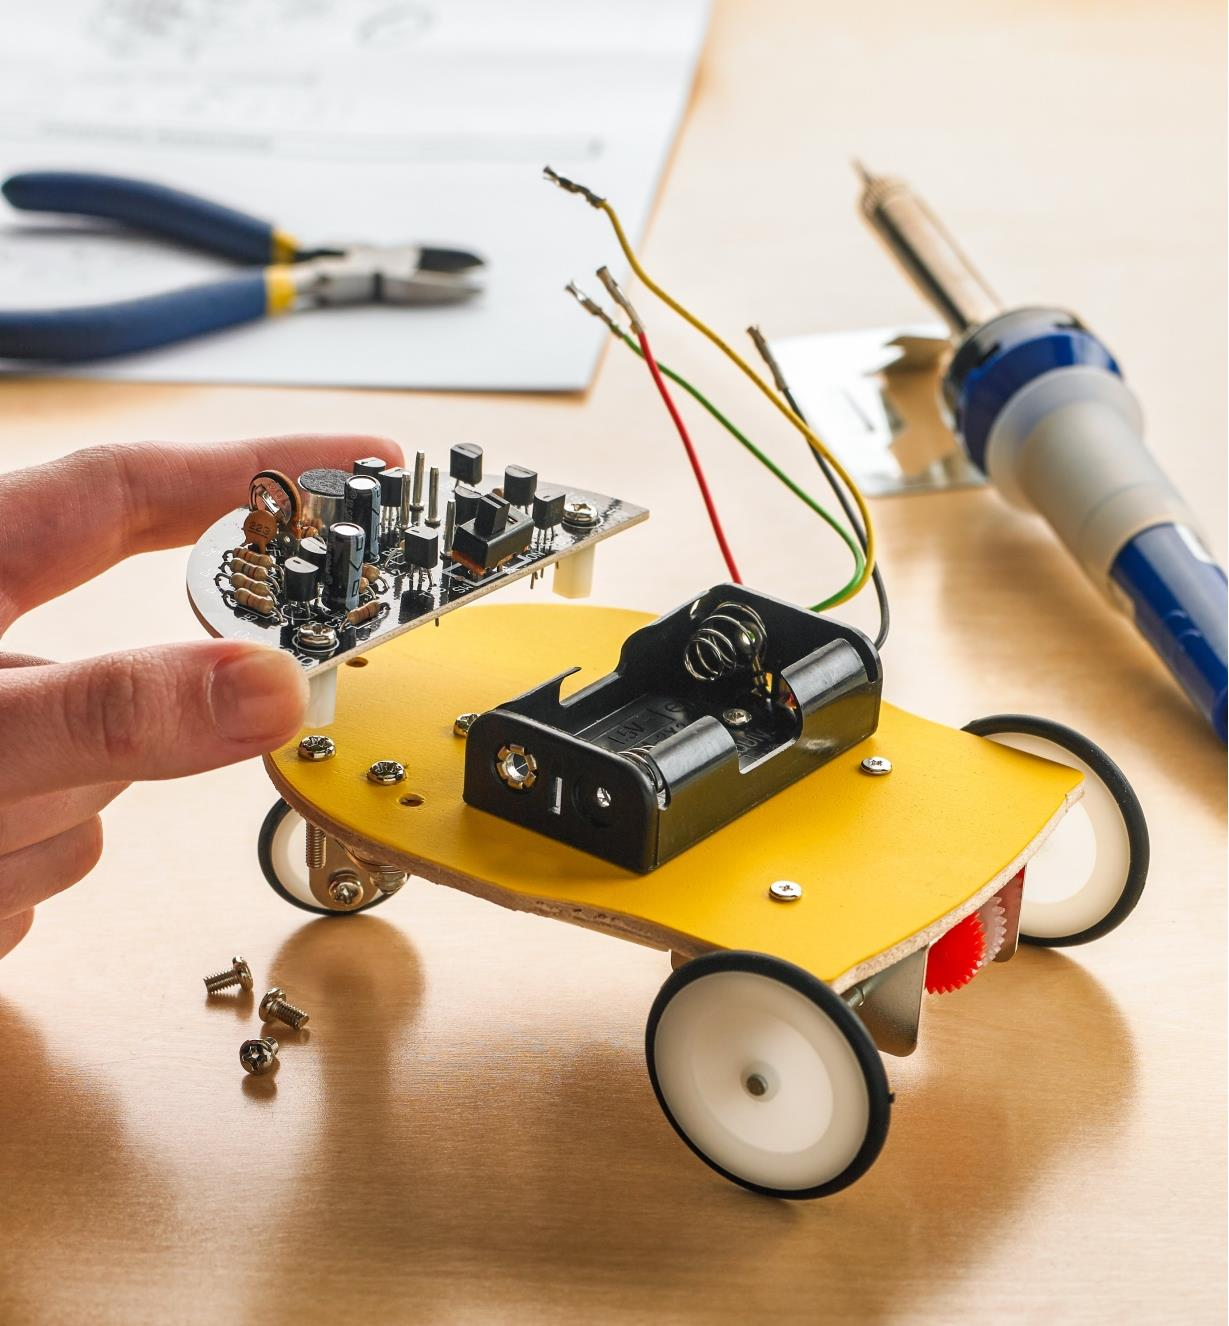 Fitting the assembled circuit board to the body of the Elenco WEmake robot car